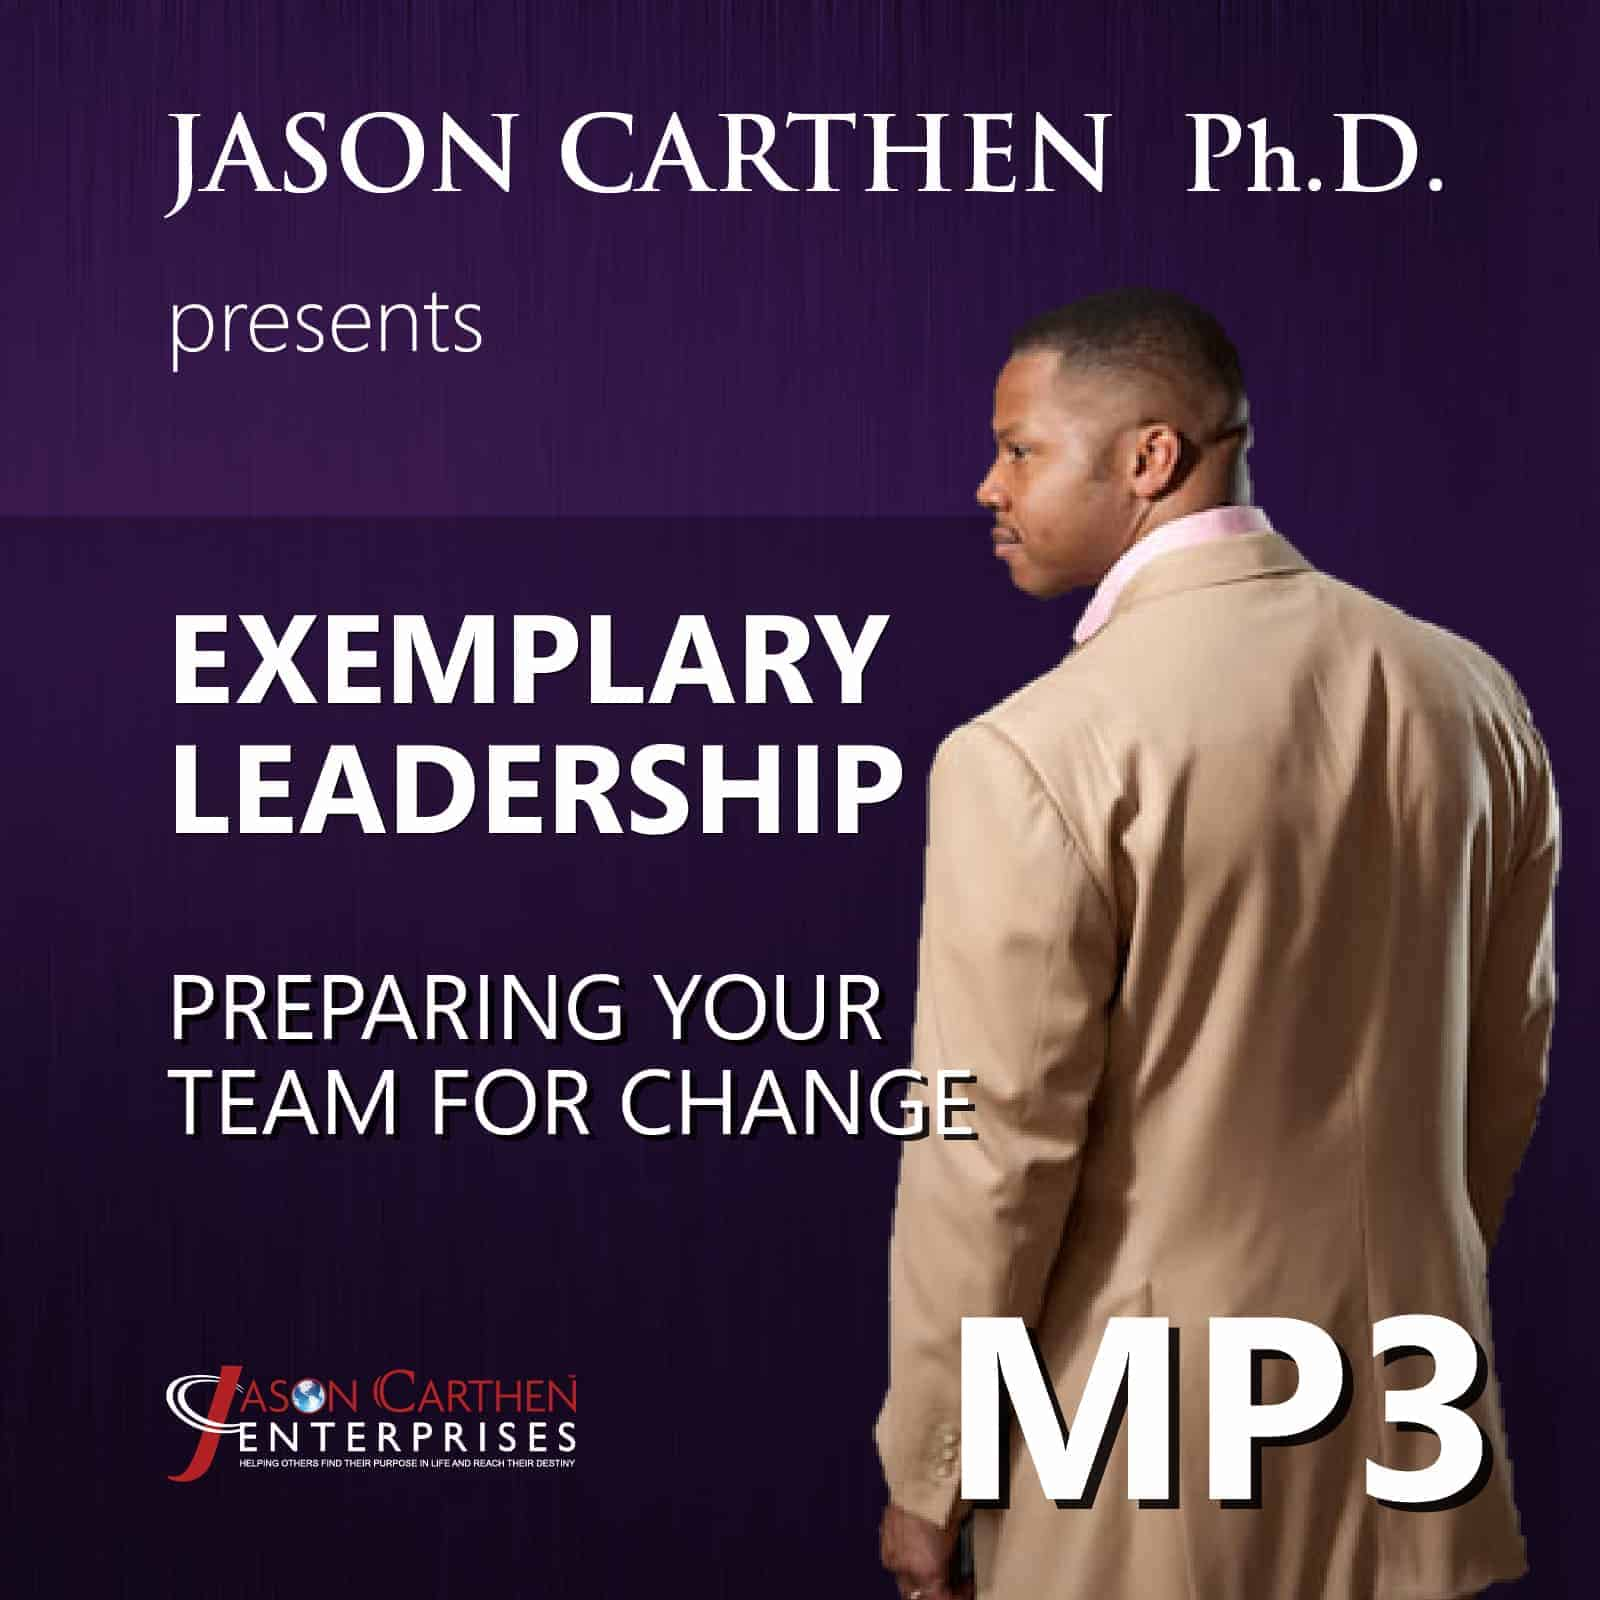 Dr. Jason Carthen: Preparing Your Team for Change.